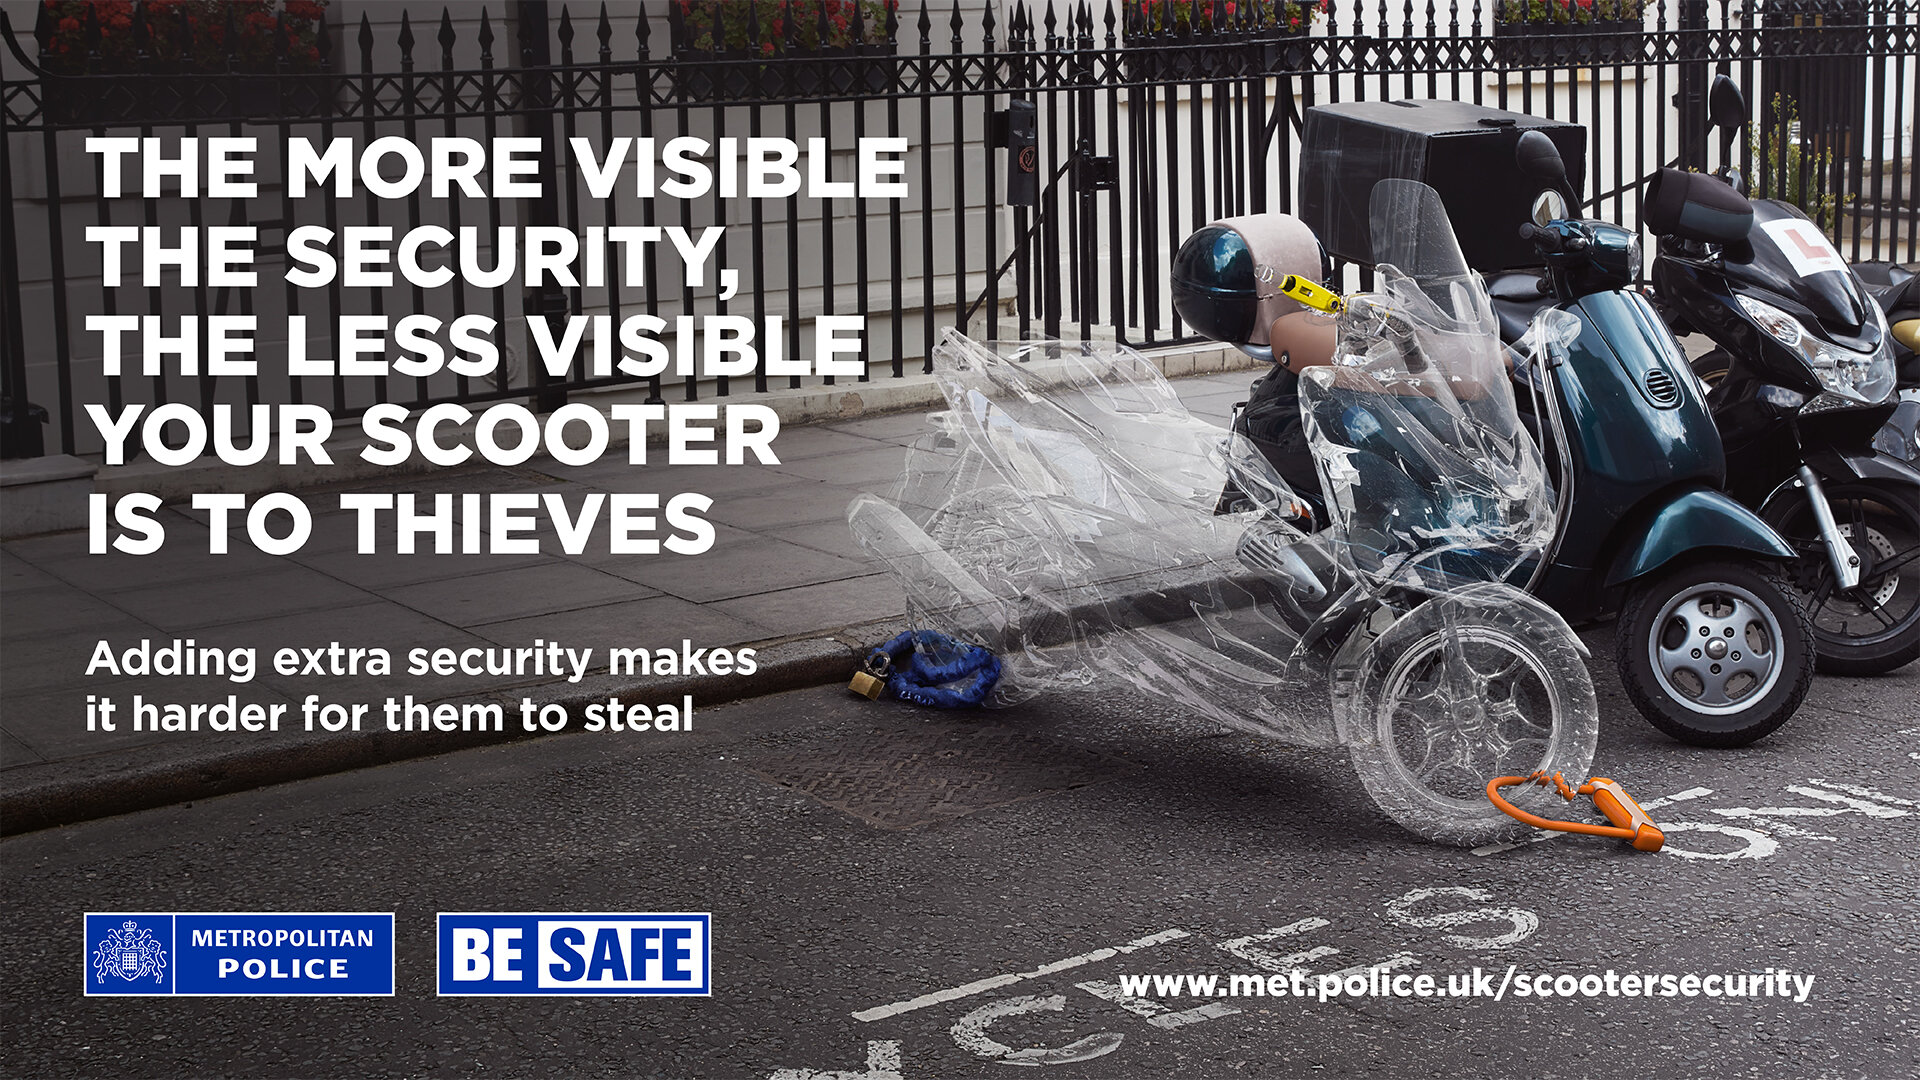 be-safe-scooter-theft-screensaver-1920x1080px-2.jpg